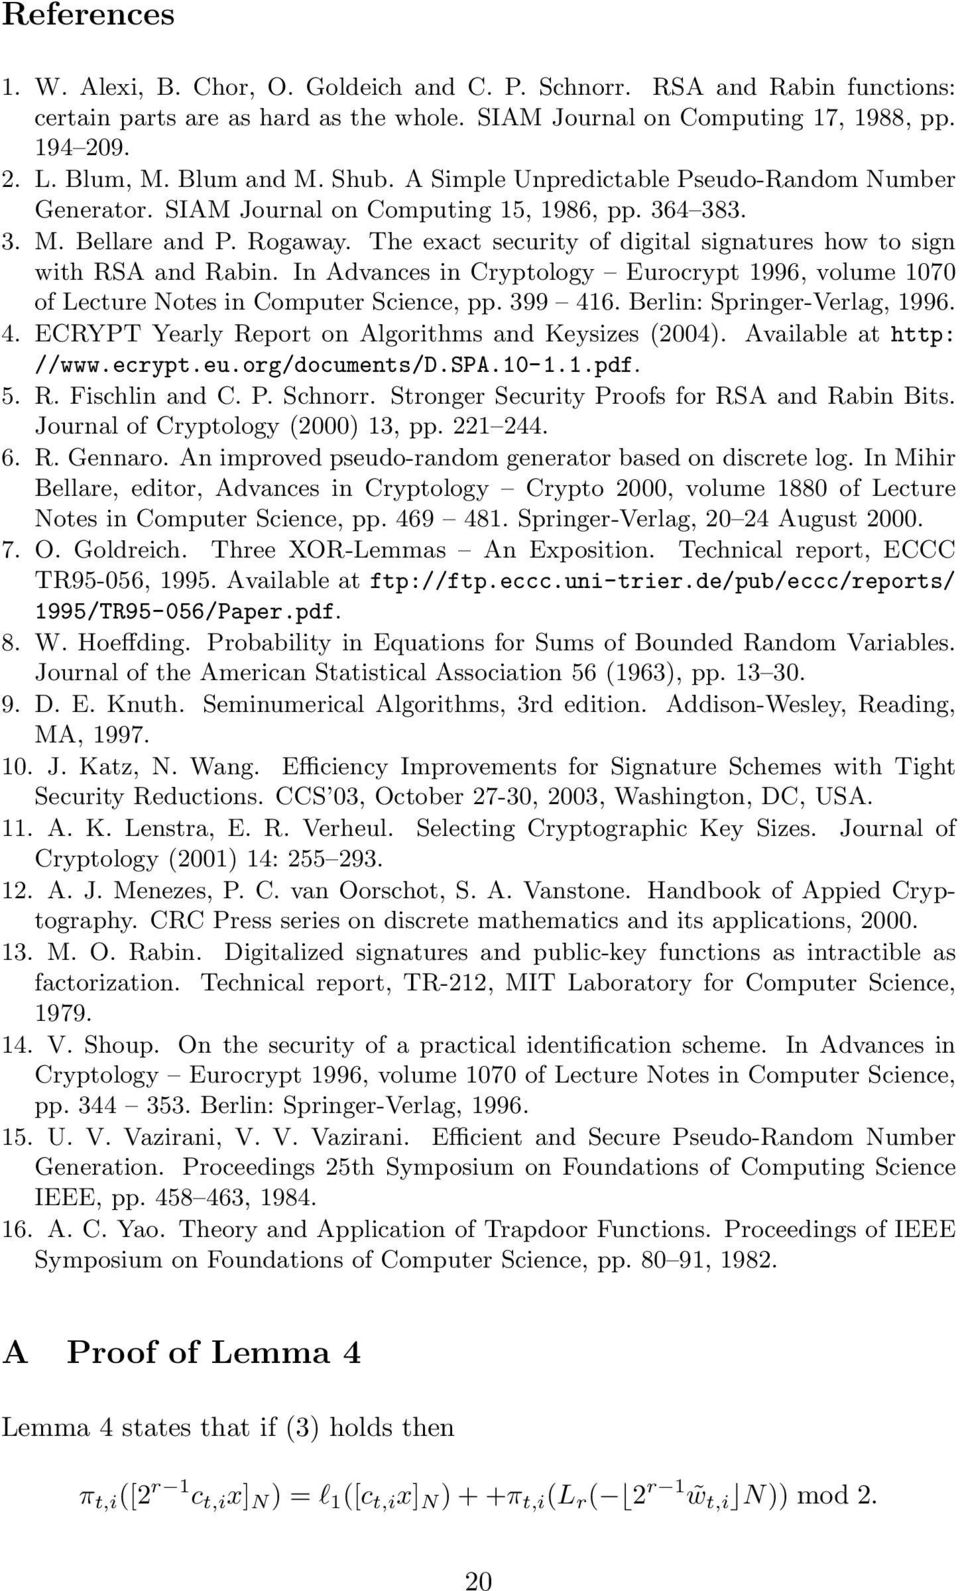 The exact security of digital signatures how to sign with RSA and Rabin. In Advances in Cryptology Eurocrypt 1996, volume 1070 of Lecture Notes in Computer Science, pp. 399 416.